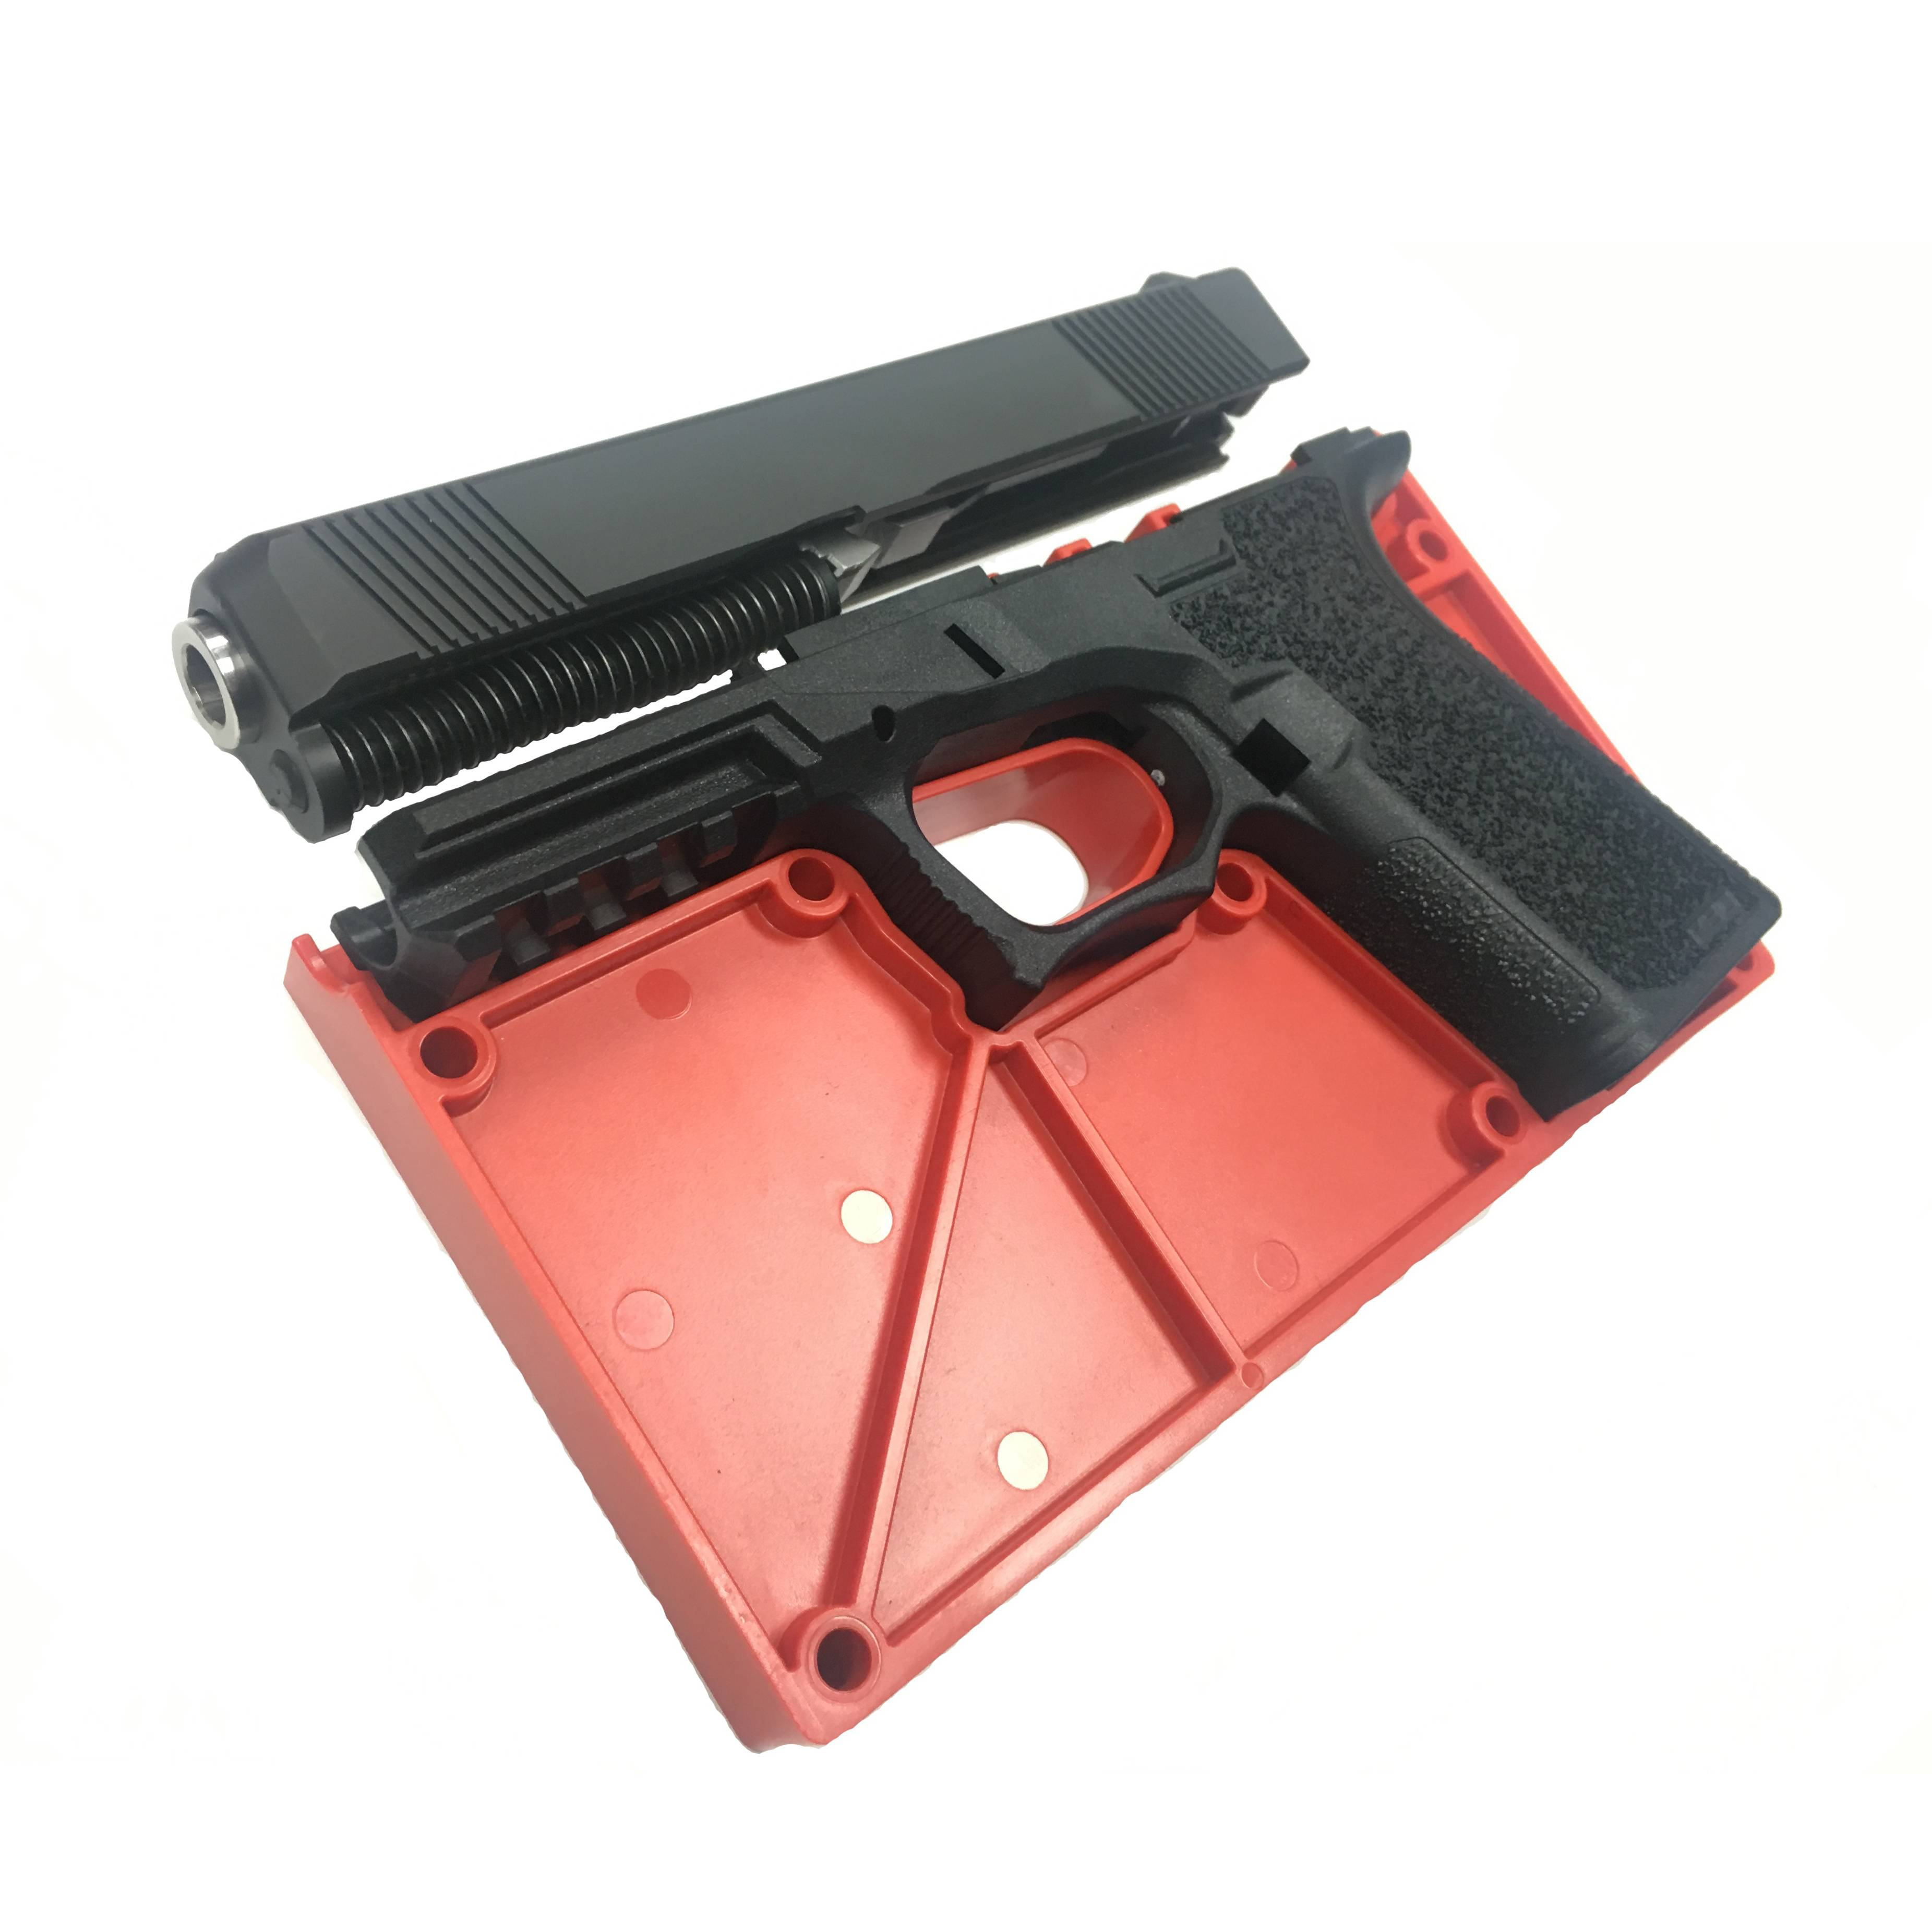 Gaston 19 Complete Build Kit 1776 Supply Co Glock 26 Diagram Along With Exploded